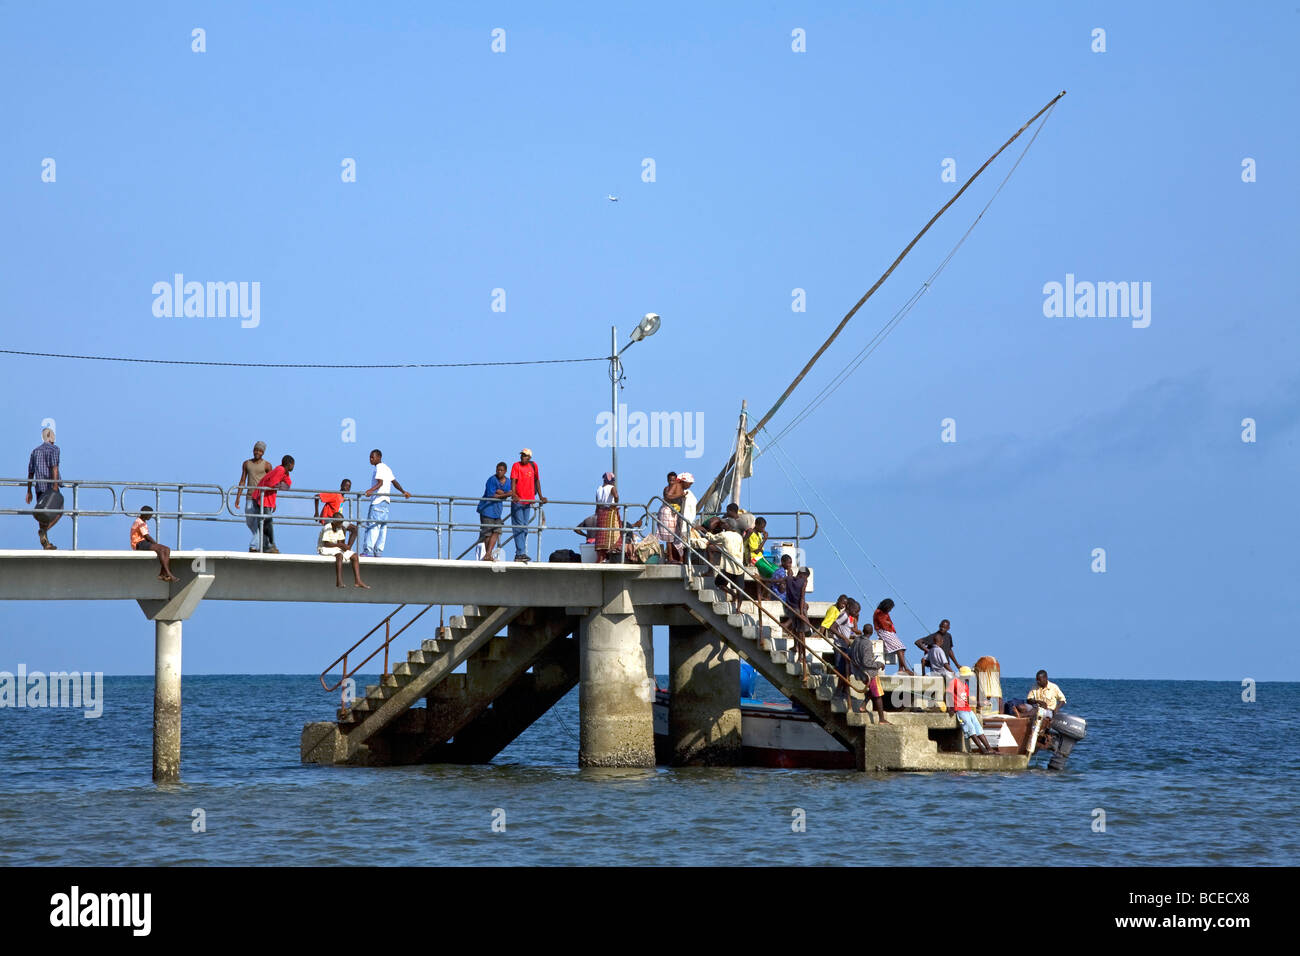 Mozambique, Inhaca Island. Local islanders carry their catch to the end of the jetty. Stock Photo